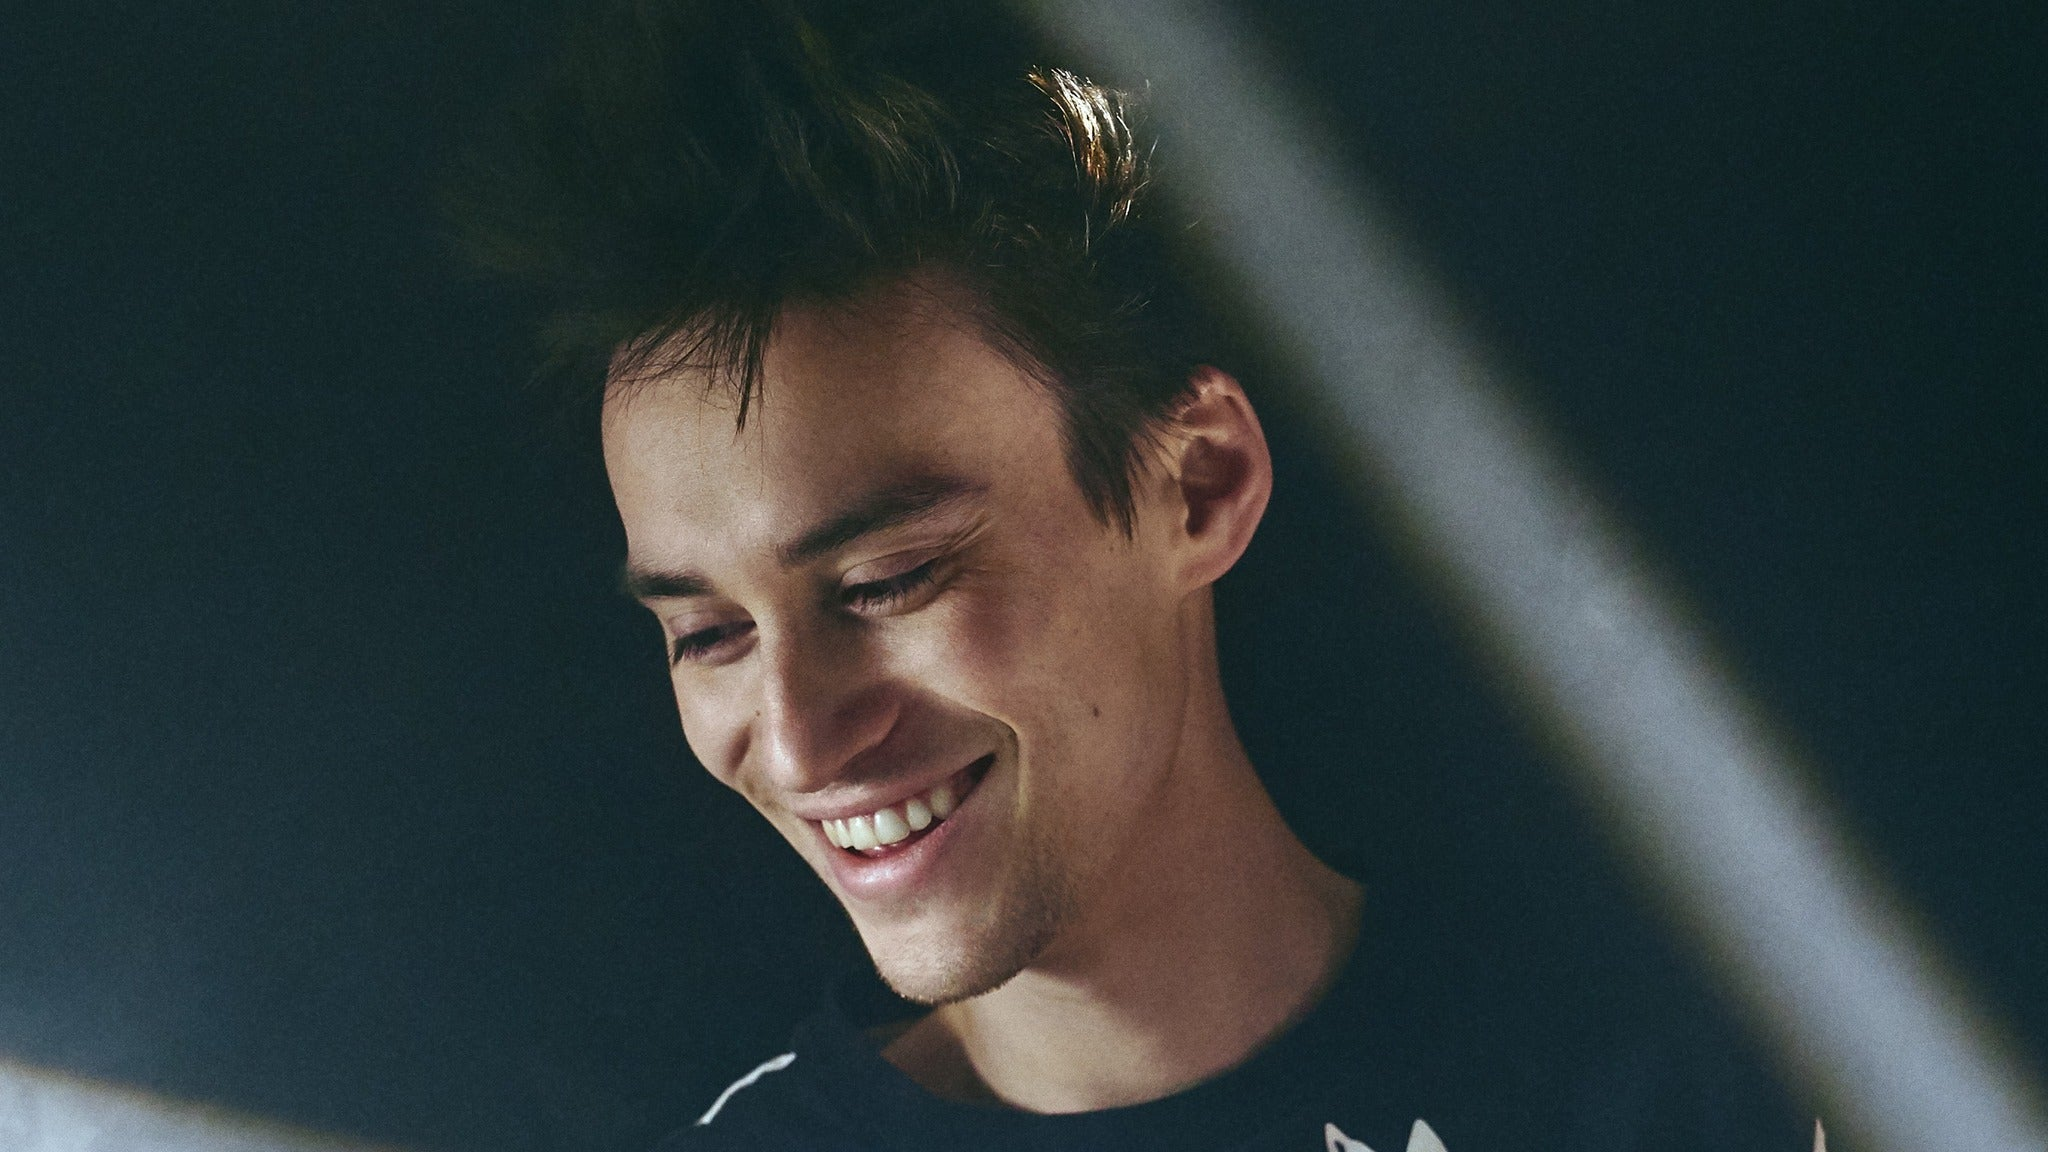 Image used with permission from Ticketmaster | Jacob Collier - DJESSE World Tour Spring 2022 tickets